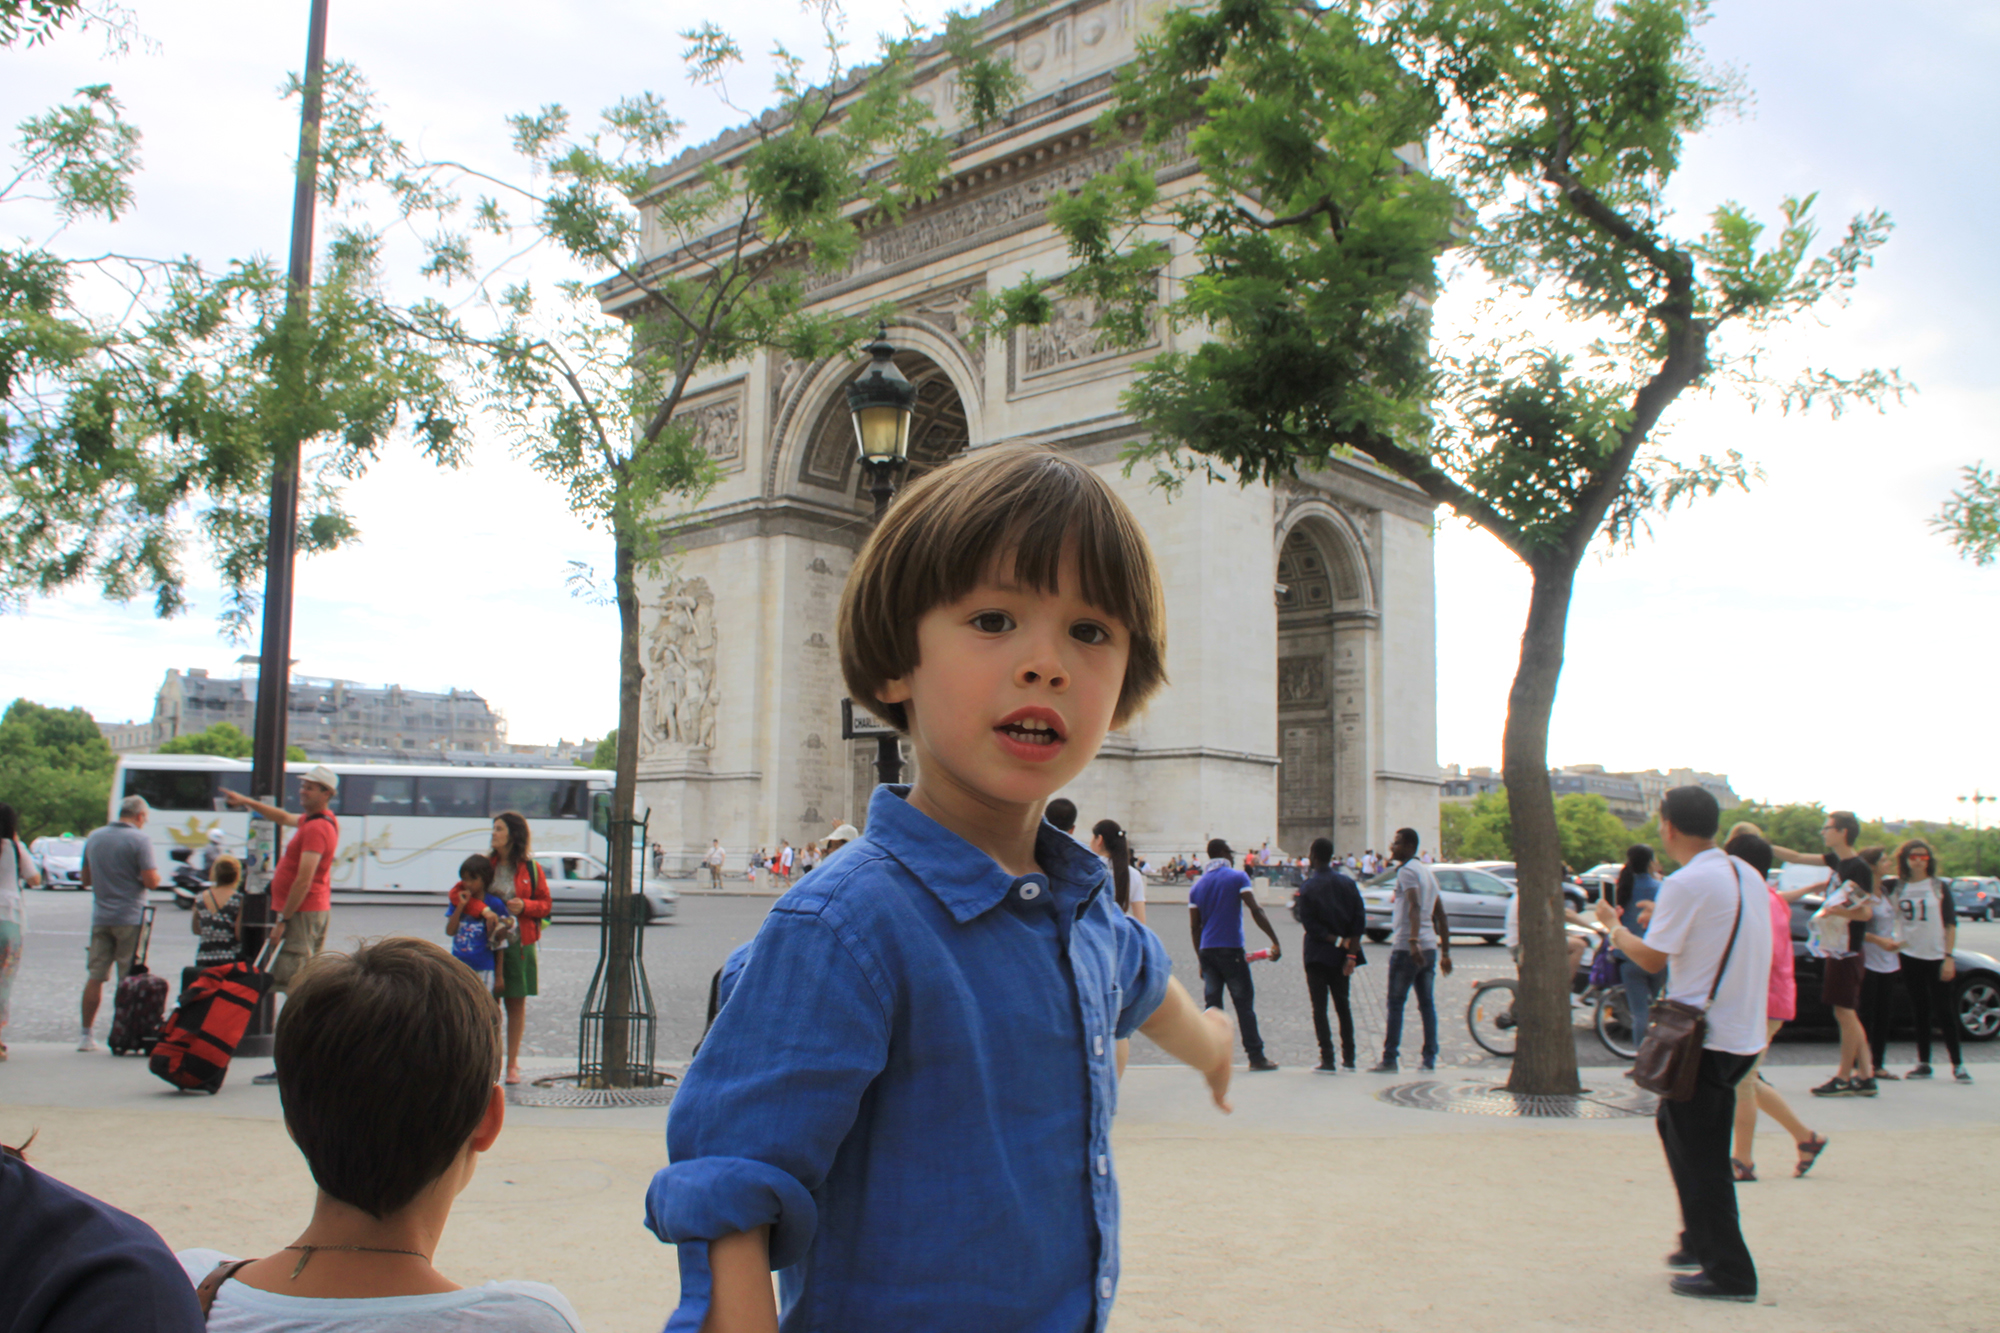 Cheap activities for kids in Paris